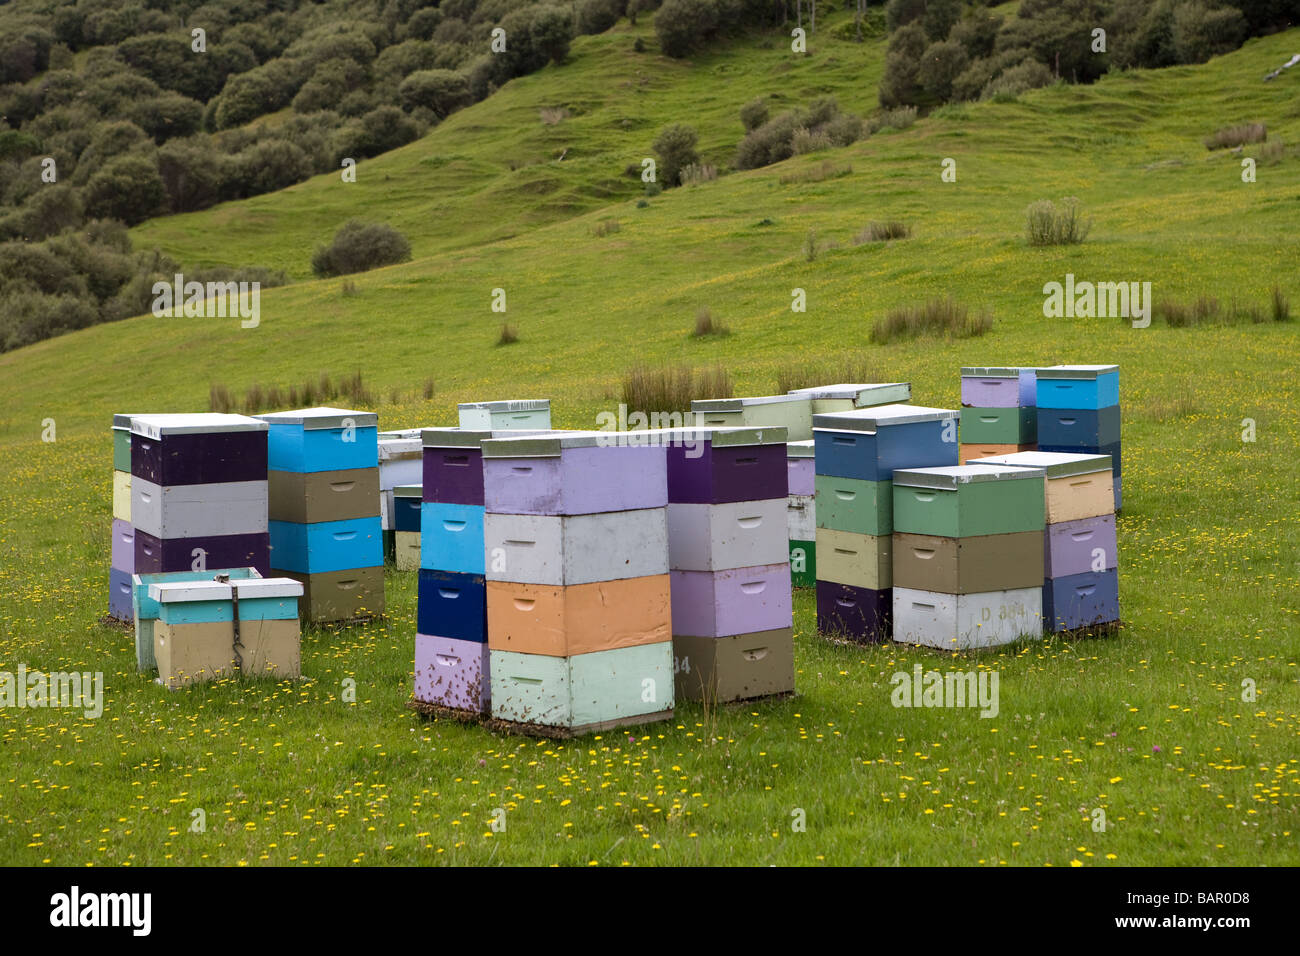 Beehives in New Zealand Stock Photo: 23862196 - Alamy